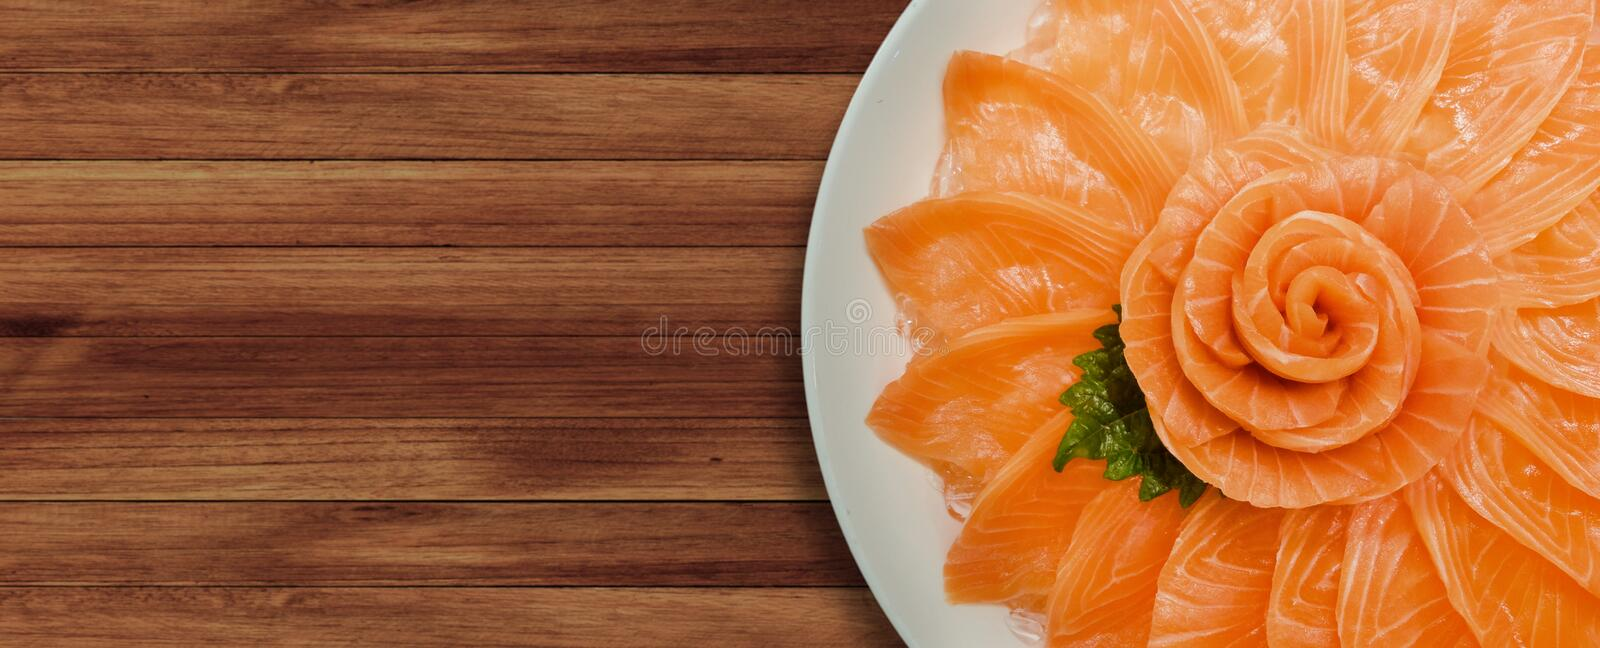 Top view of salmon sashimi serve on flower shape in white ice bowl boat on wood table background, Japanese style royalty free stock photo